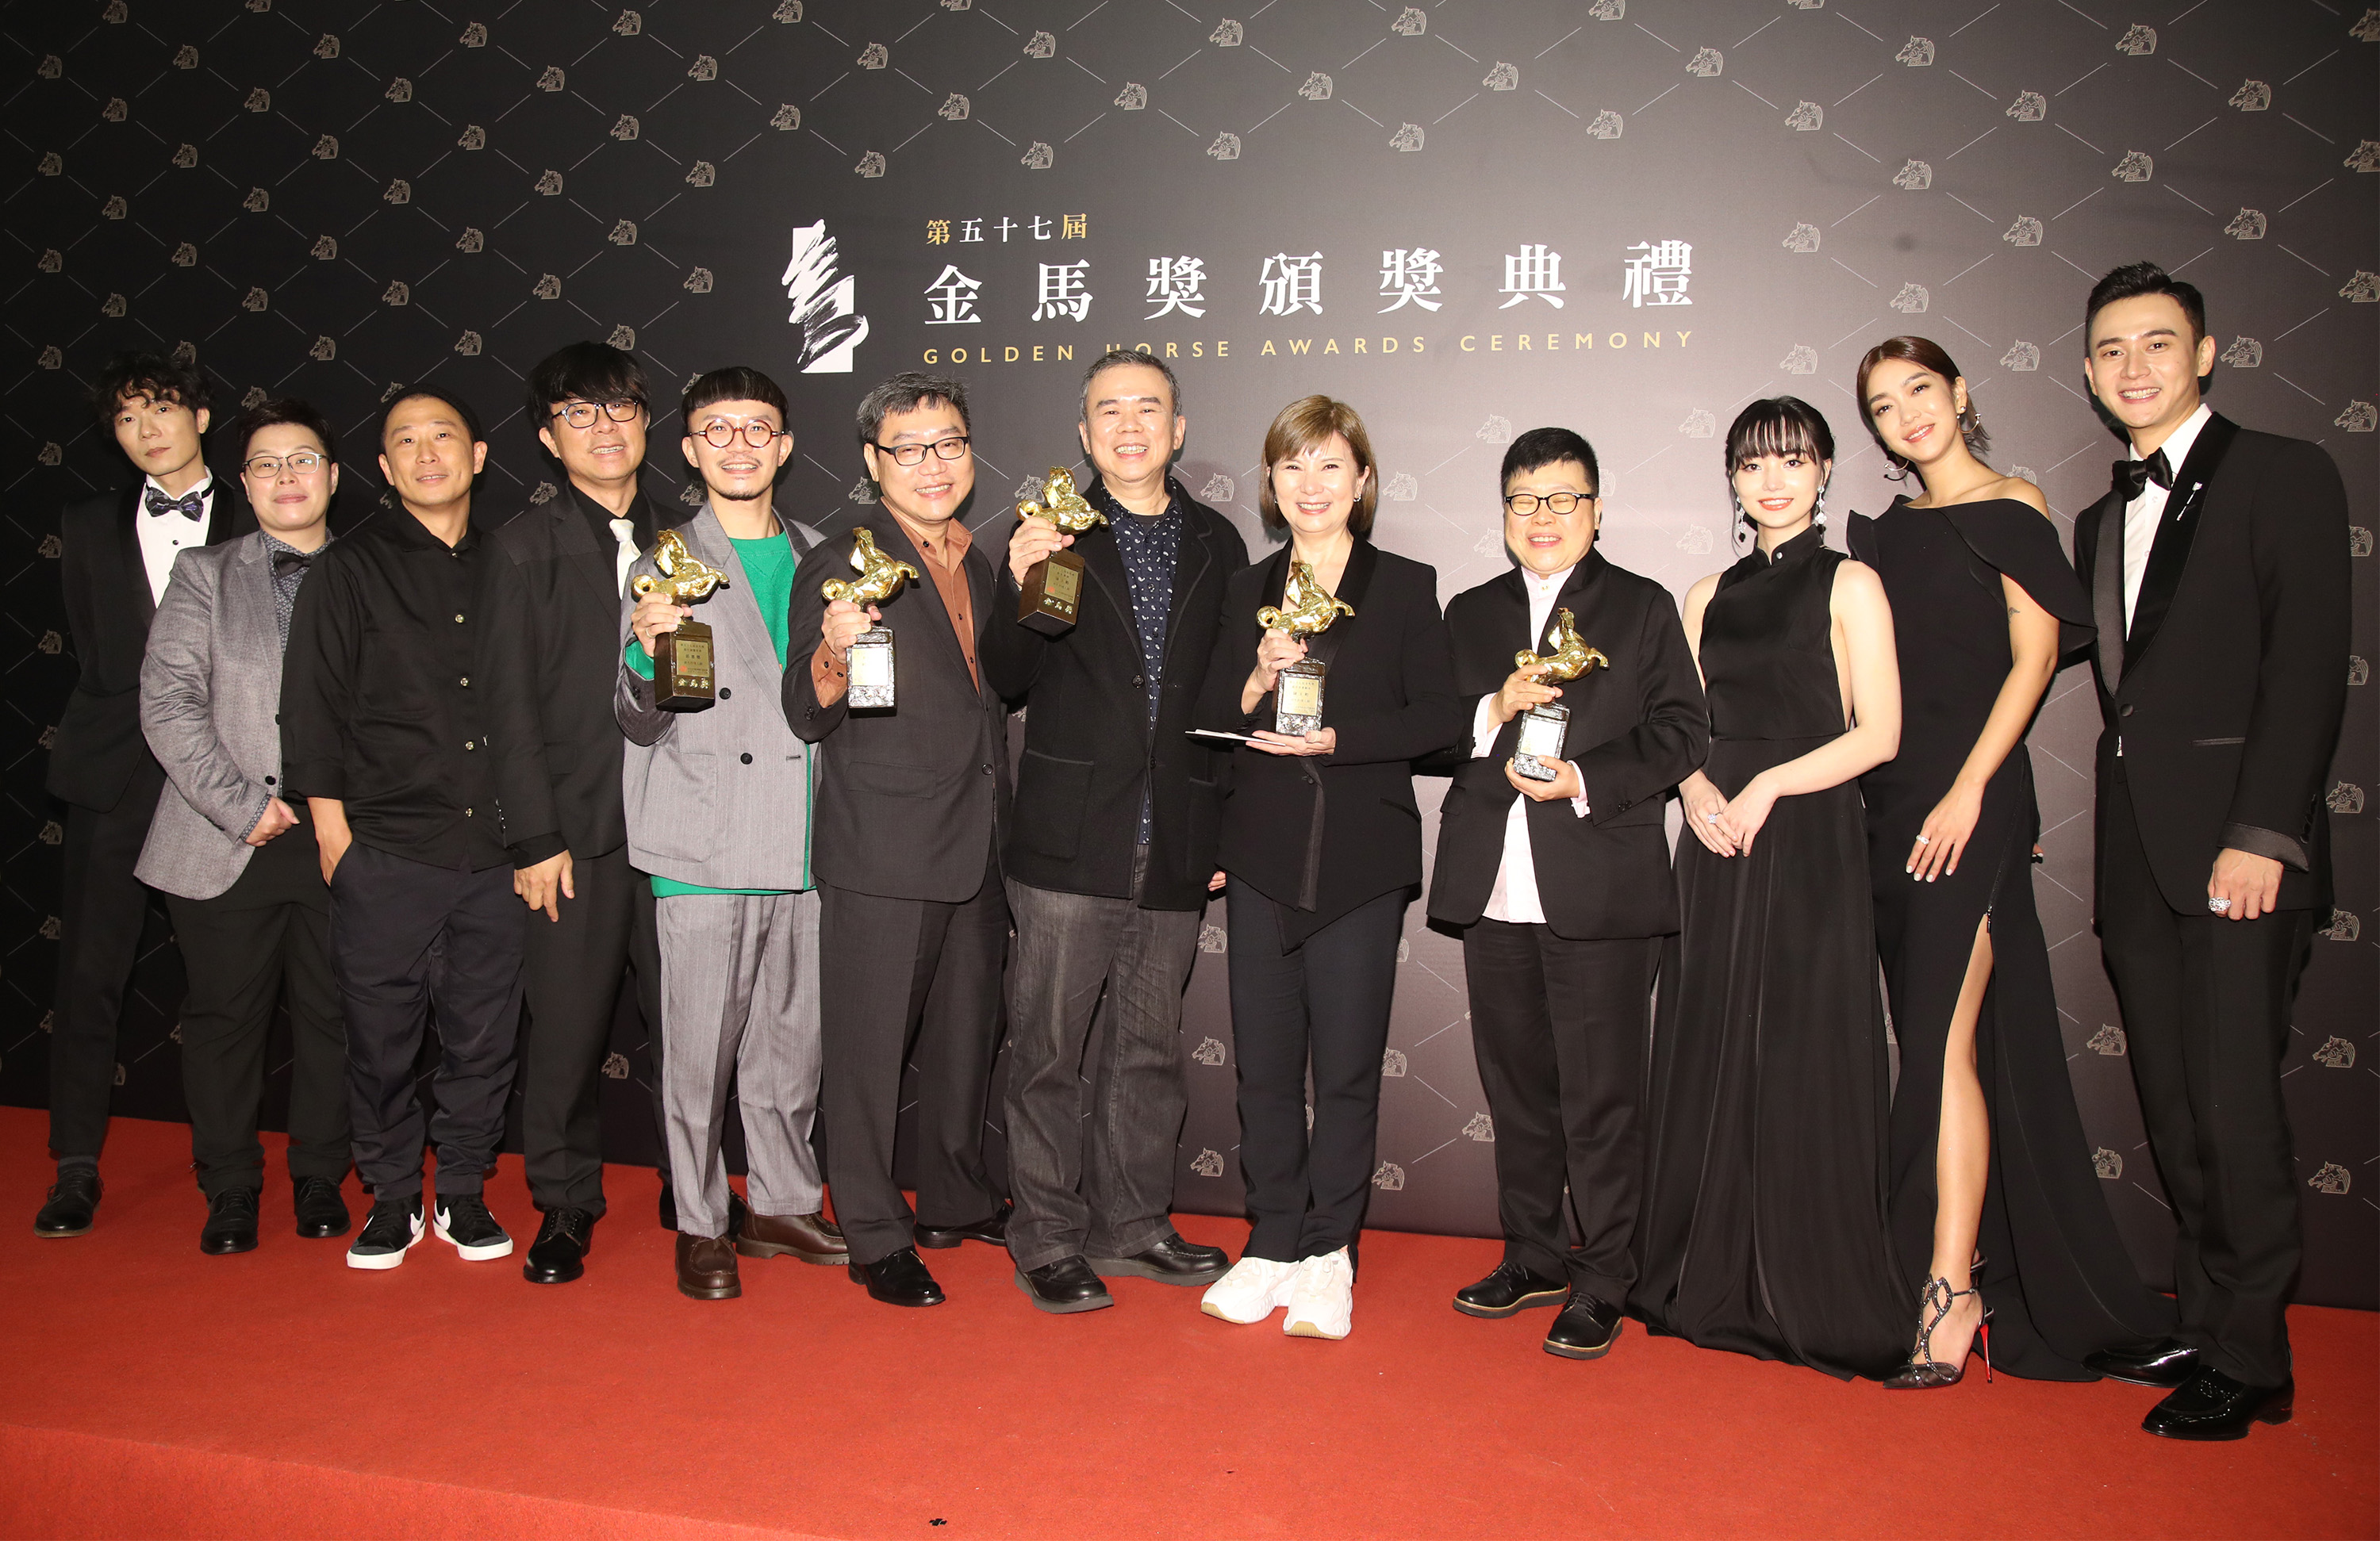 Time-honored Golden Horse Awards ceremony takes place in Taipei